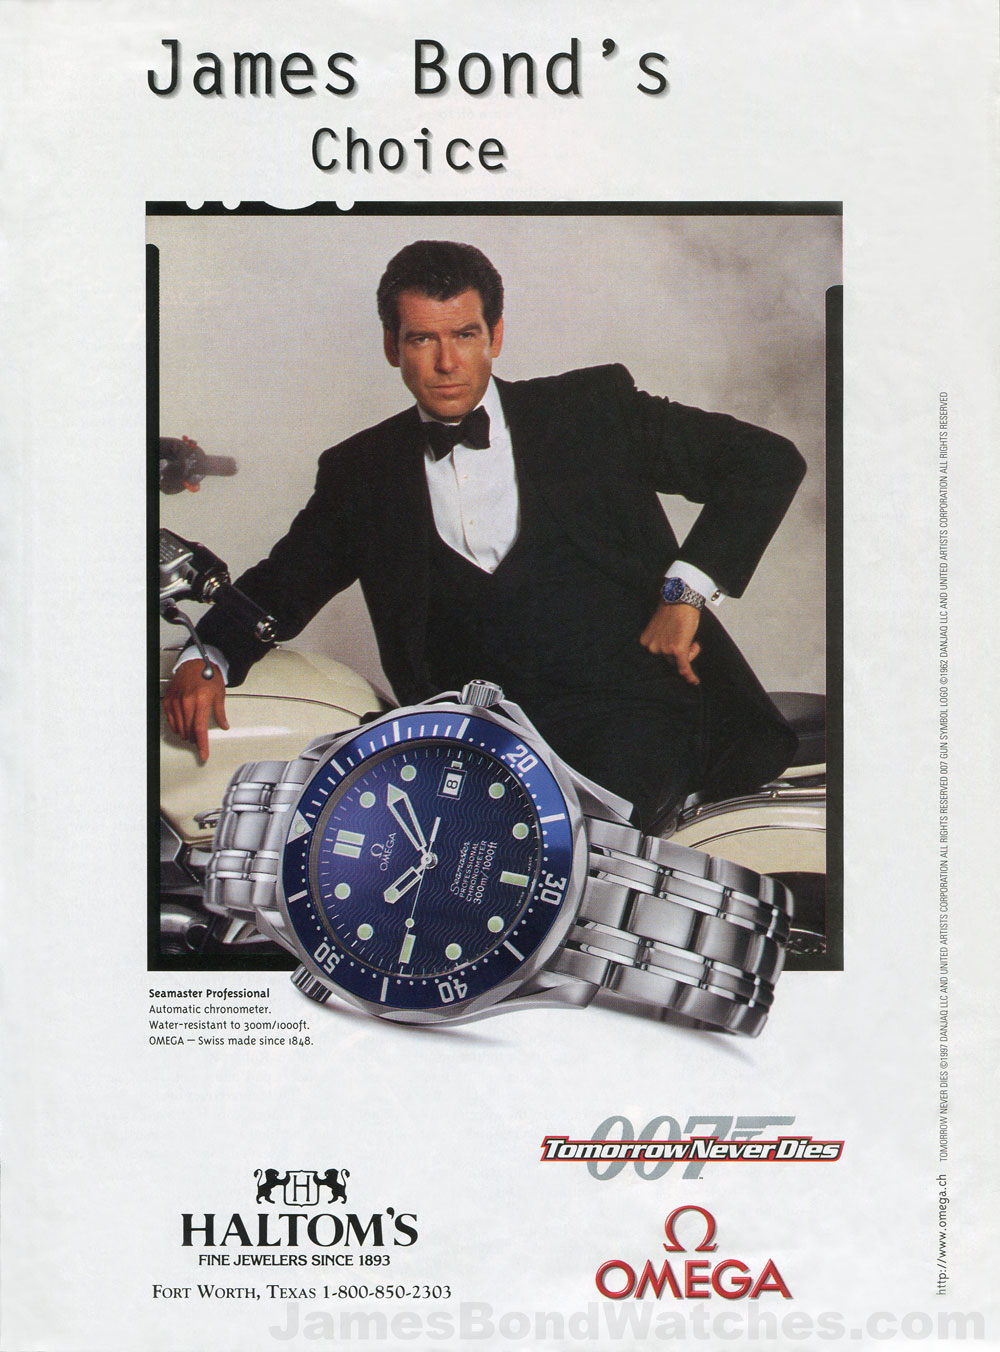 http://jamesbondwatchesblog.com/wp-content/uploads/2012/02/omega-james-bond-watch-ad-tomorrow-never-dies-pierce-brosnan-002c2.jpg